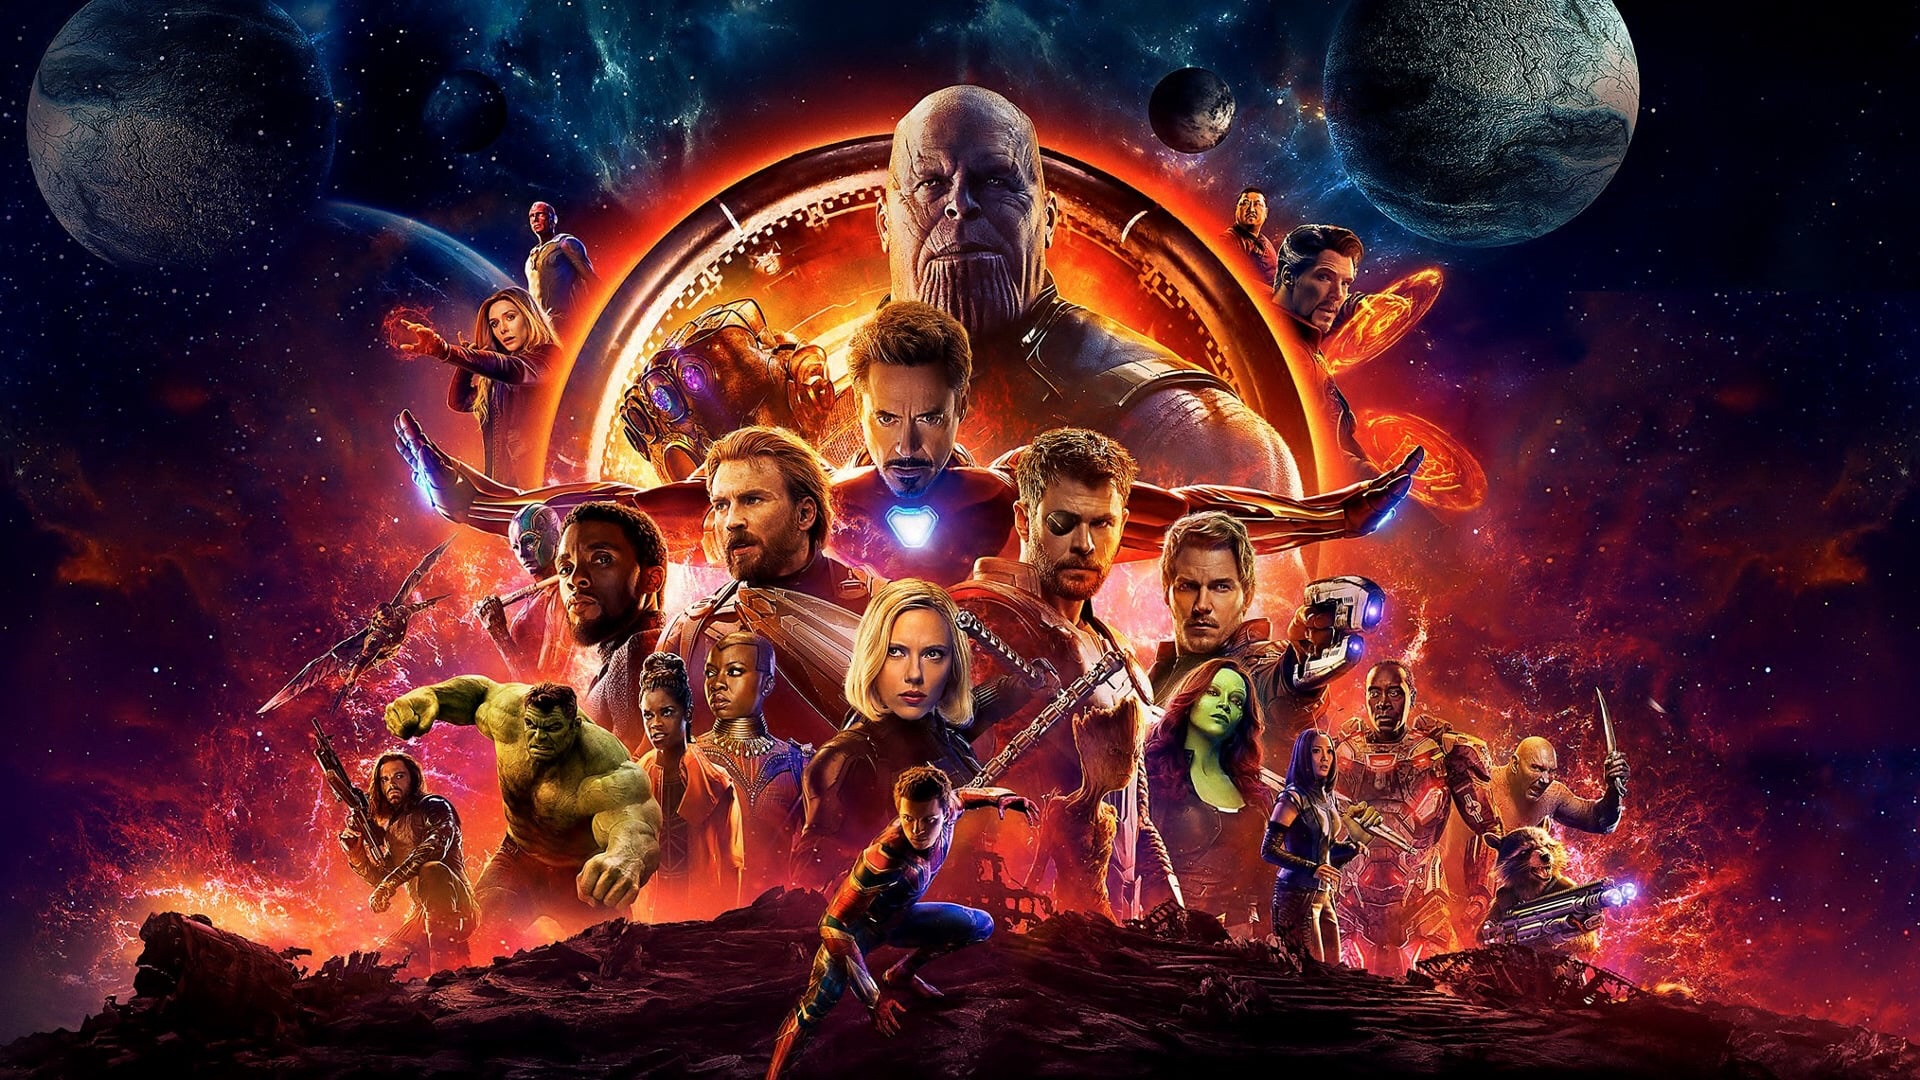 'Avengers: Infinity War' SPOILER Review & Discussion